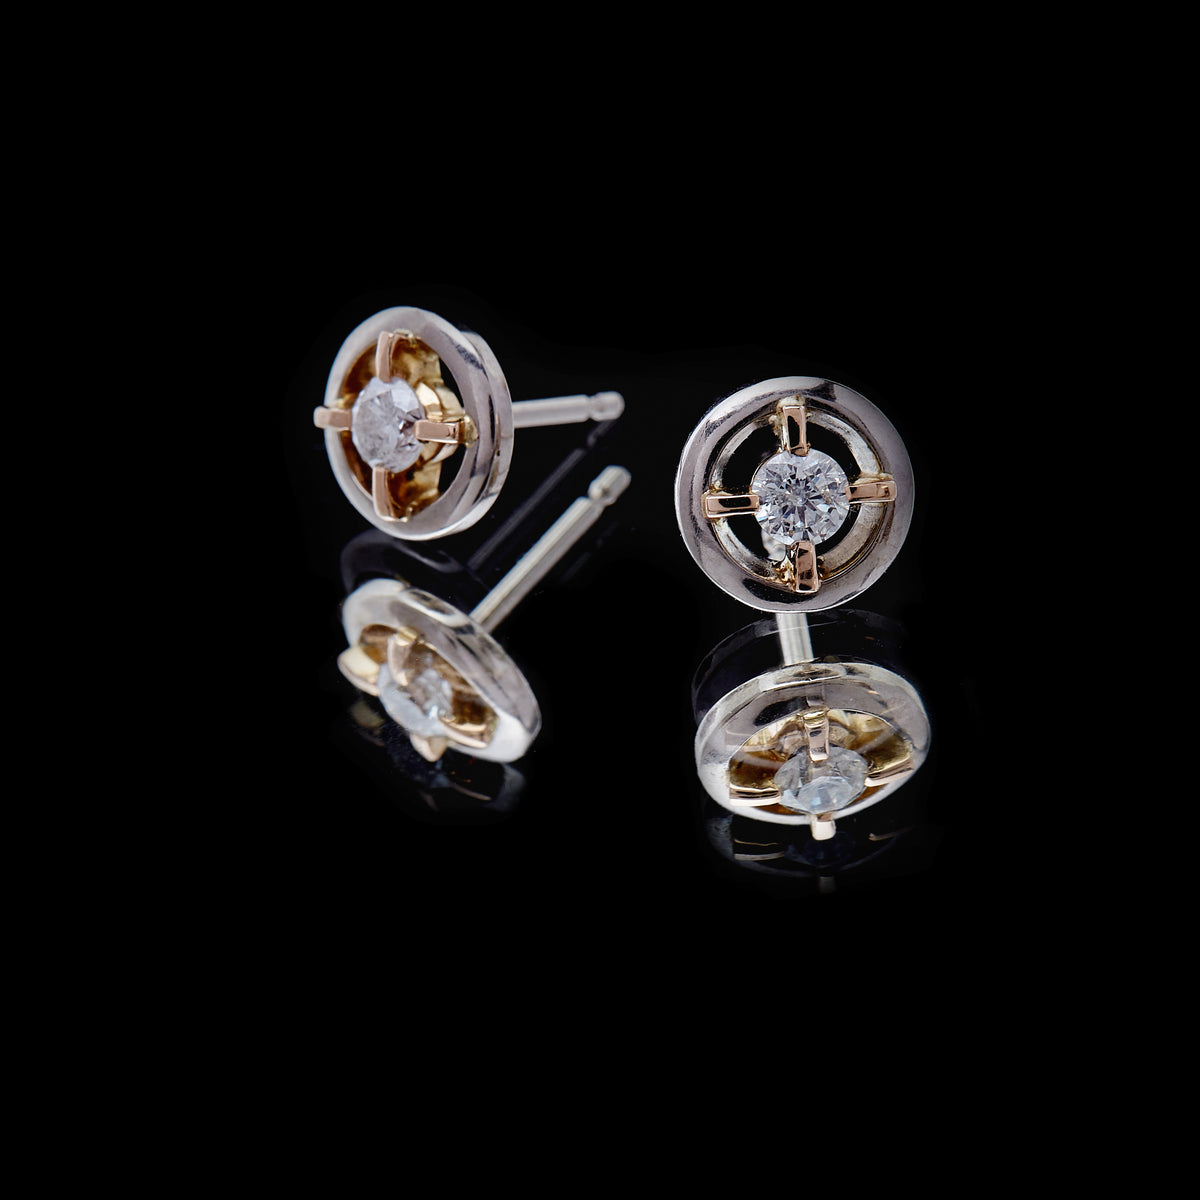 Guy and Max Round Brilliant Cut Diamond, White and Rose Gold Orbital Stud Earrings, picture 3 of 4